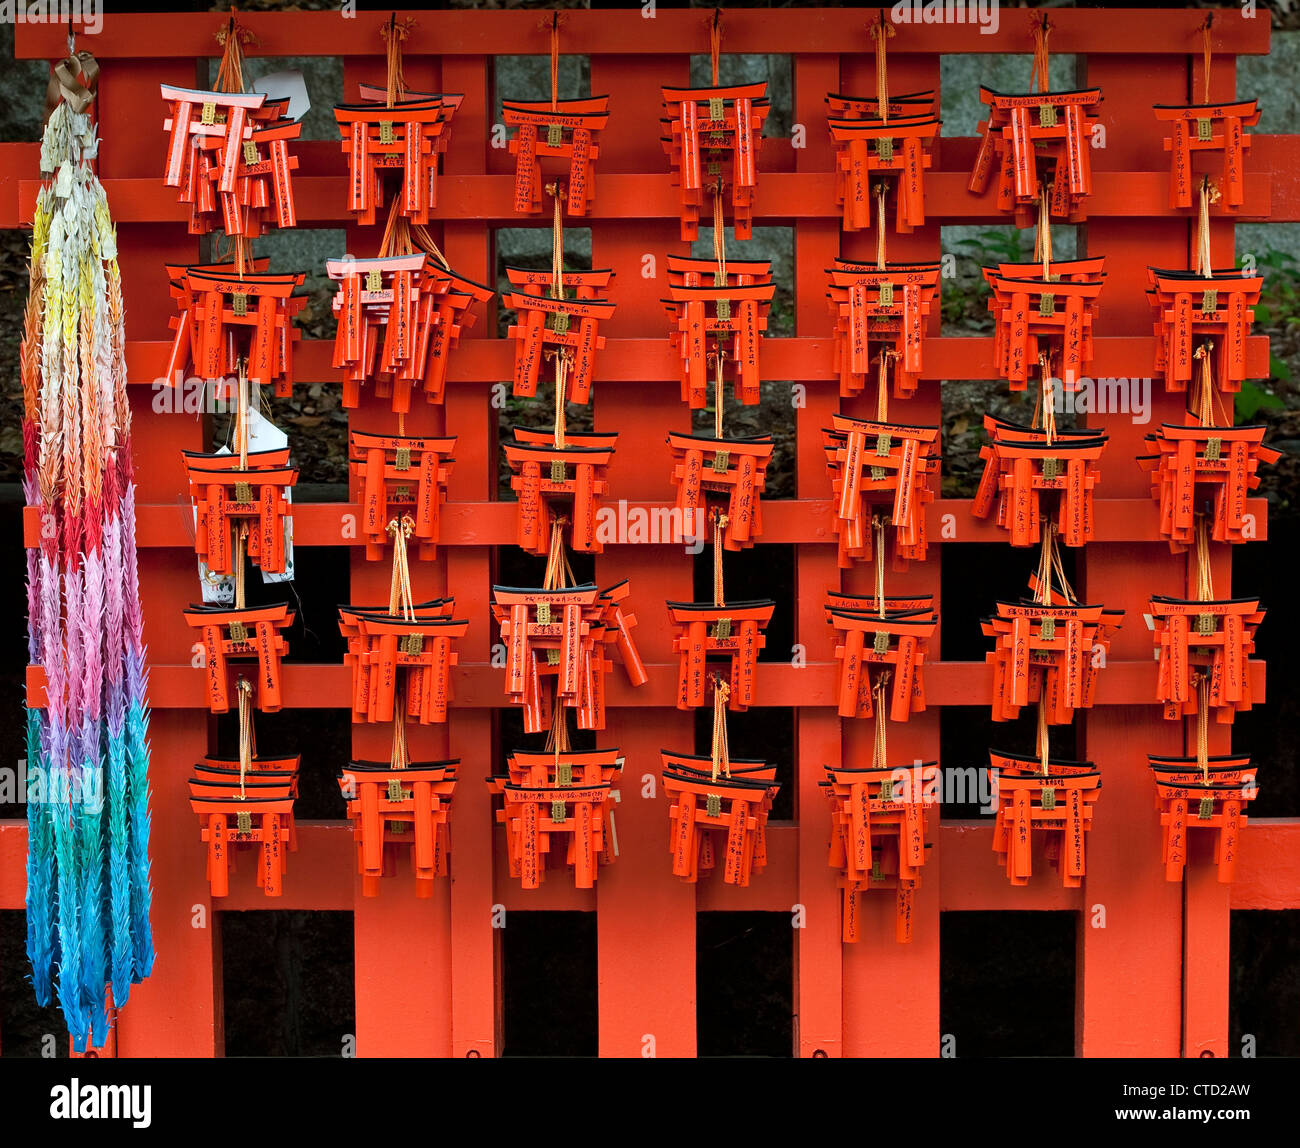 The Shinto shrine of Fushimi Inari-taisha, Kyoto, Japan. Miniature votive torii gates left as offerings by pilgrims - Stock Image